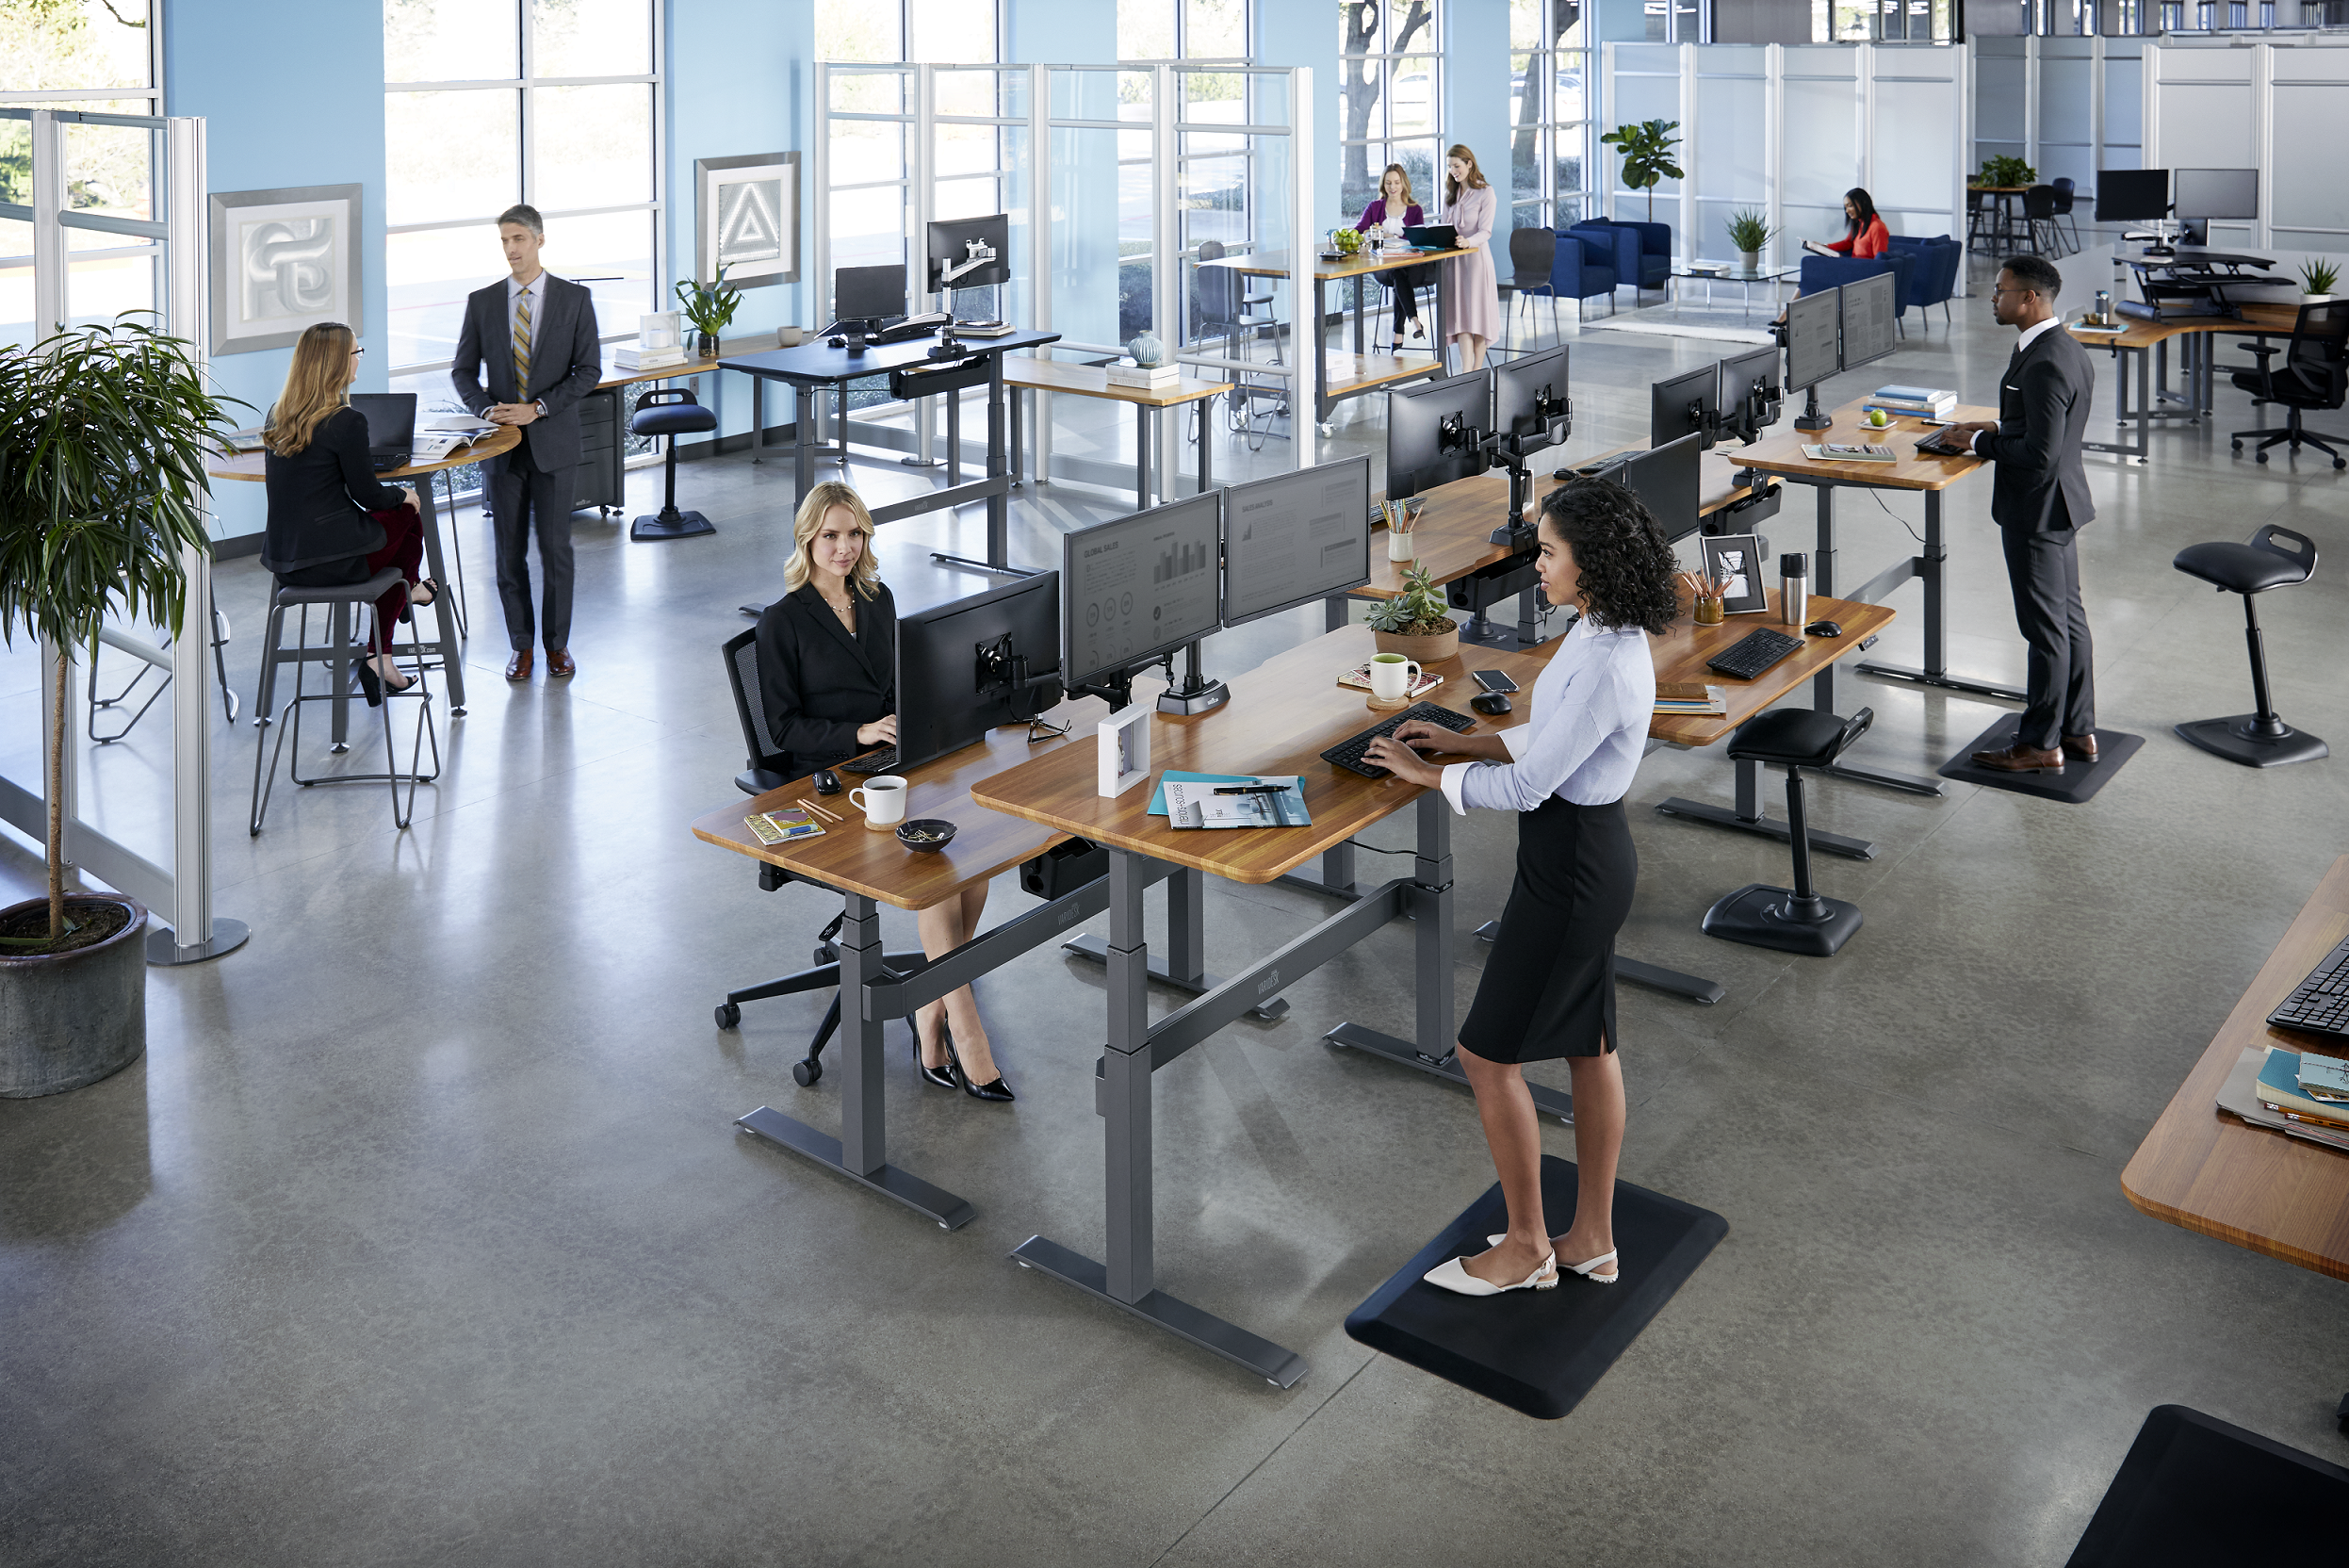 professional open office with people using standing desks